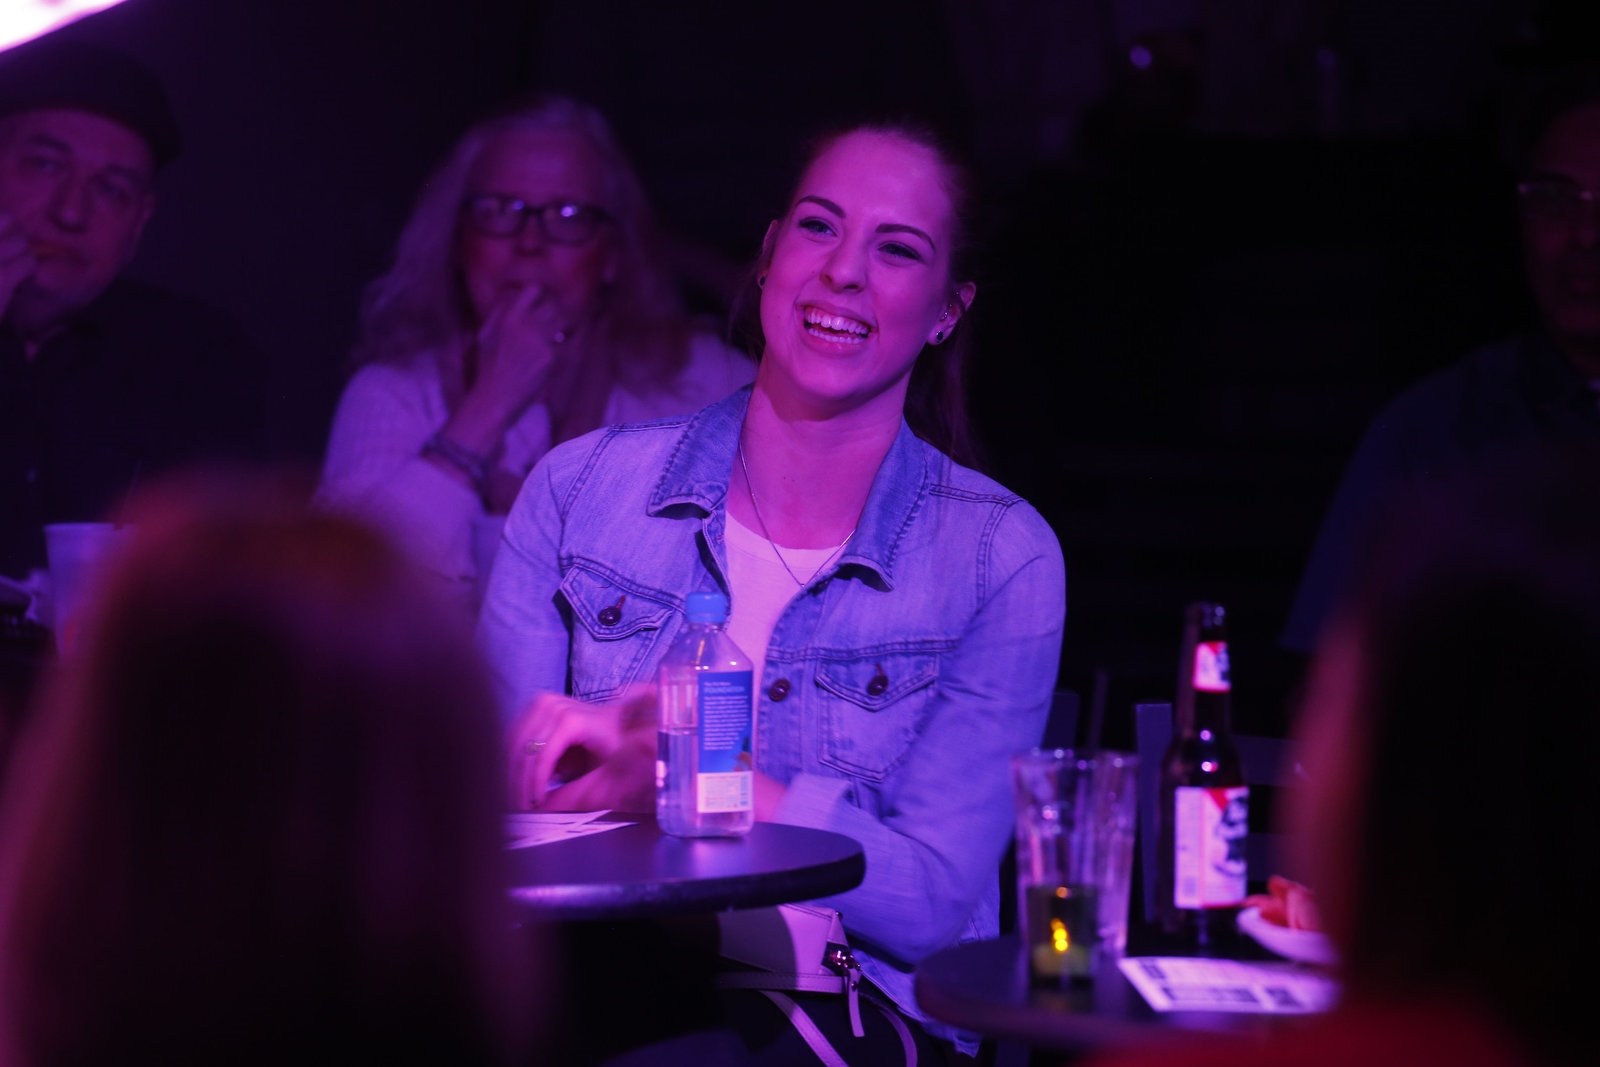 Erin Griffiths, girlfriend of student comedian Austin Hodkinson, listens to his set.